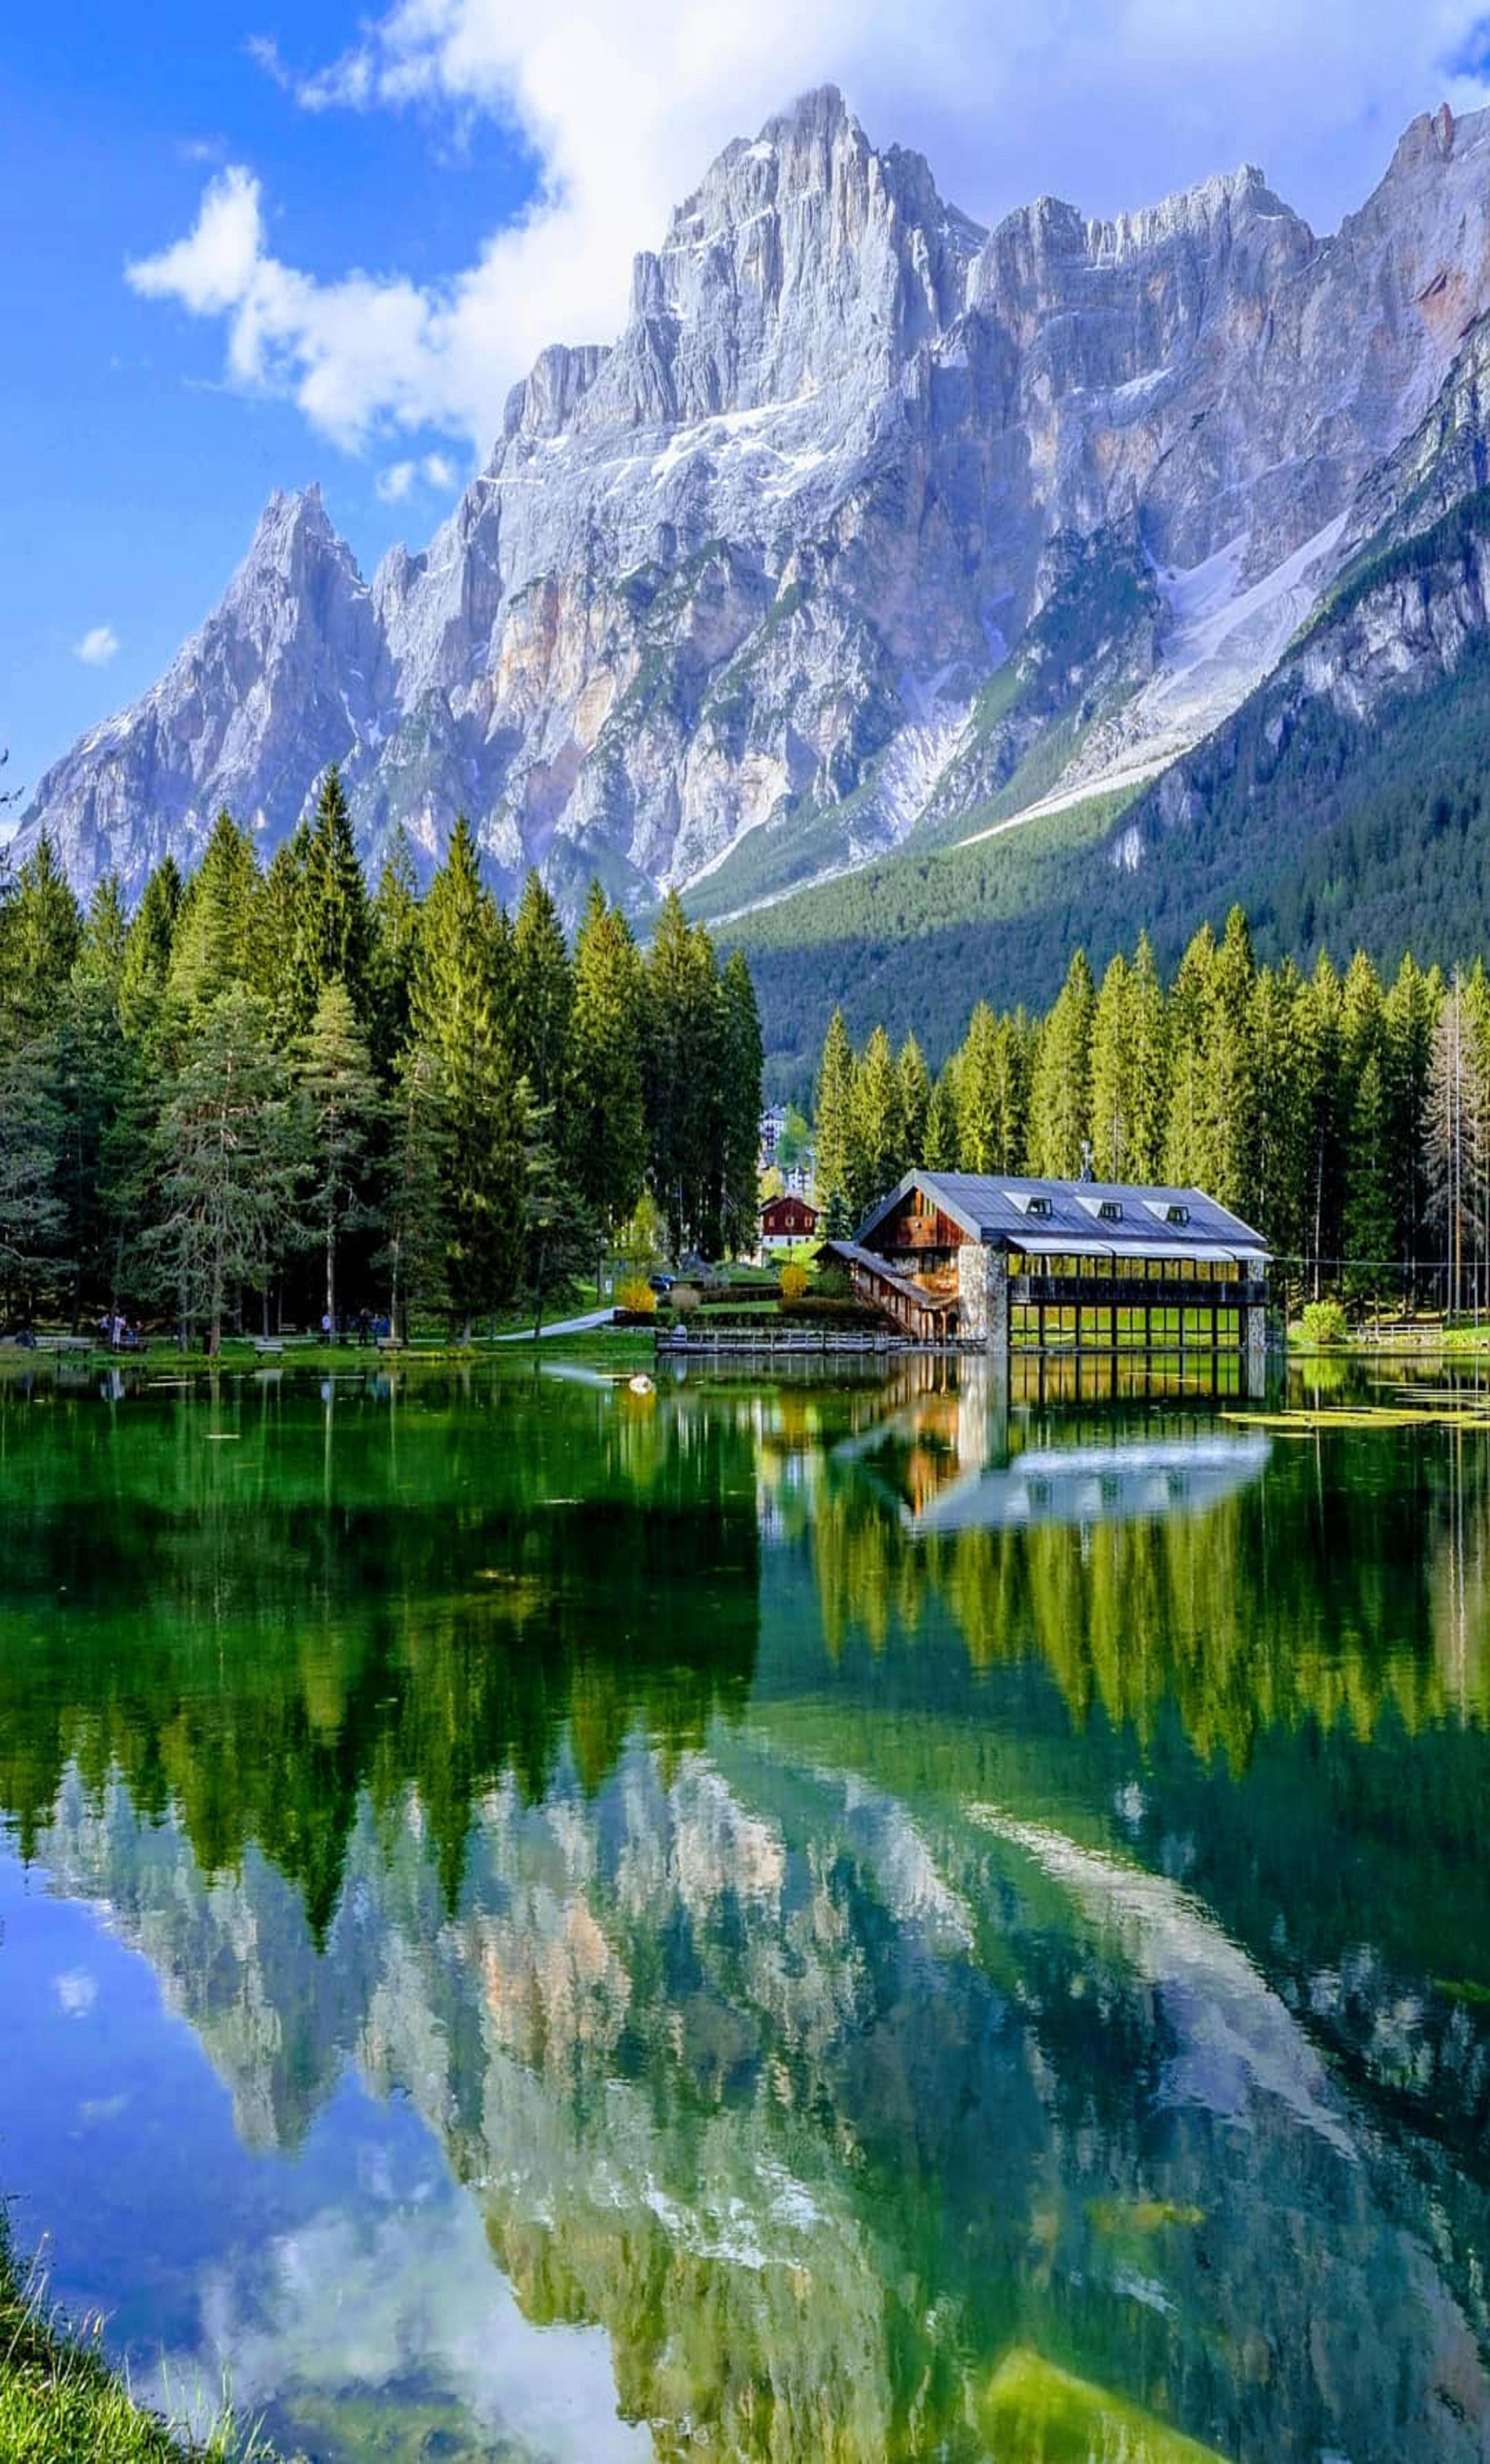 Mosigo Lake Italy Beautiful Nature Pictures Nature Pictures Landscape Photography